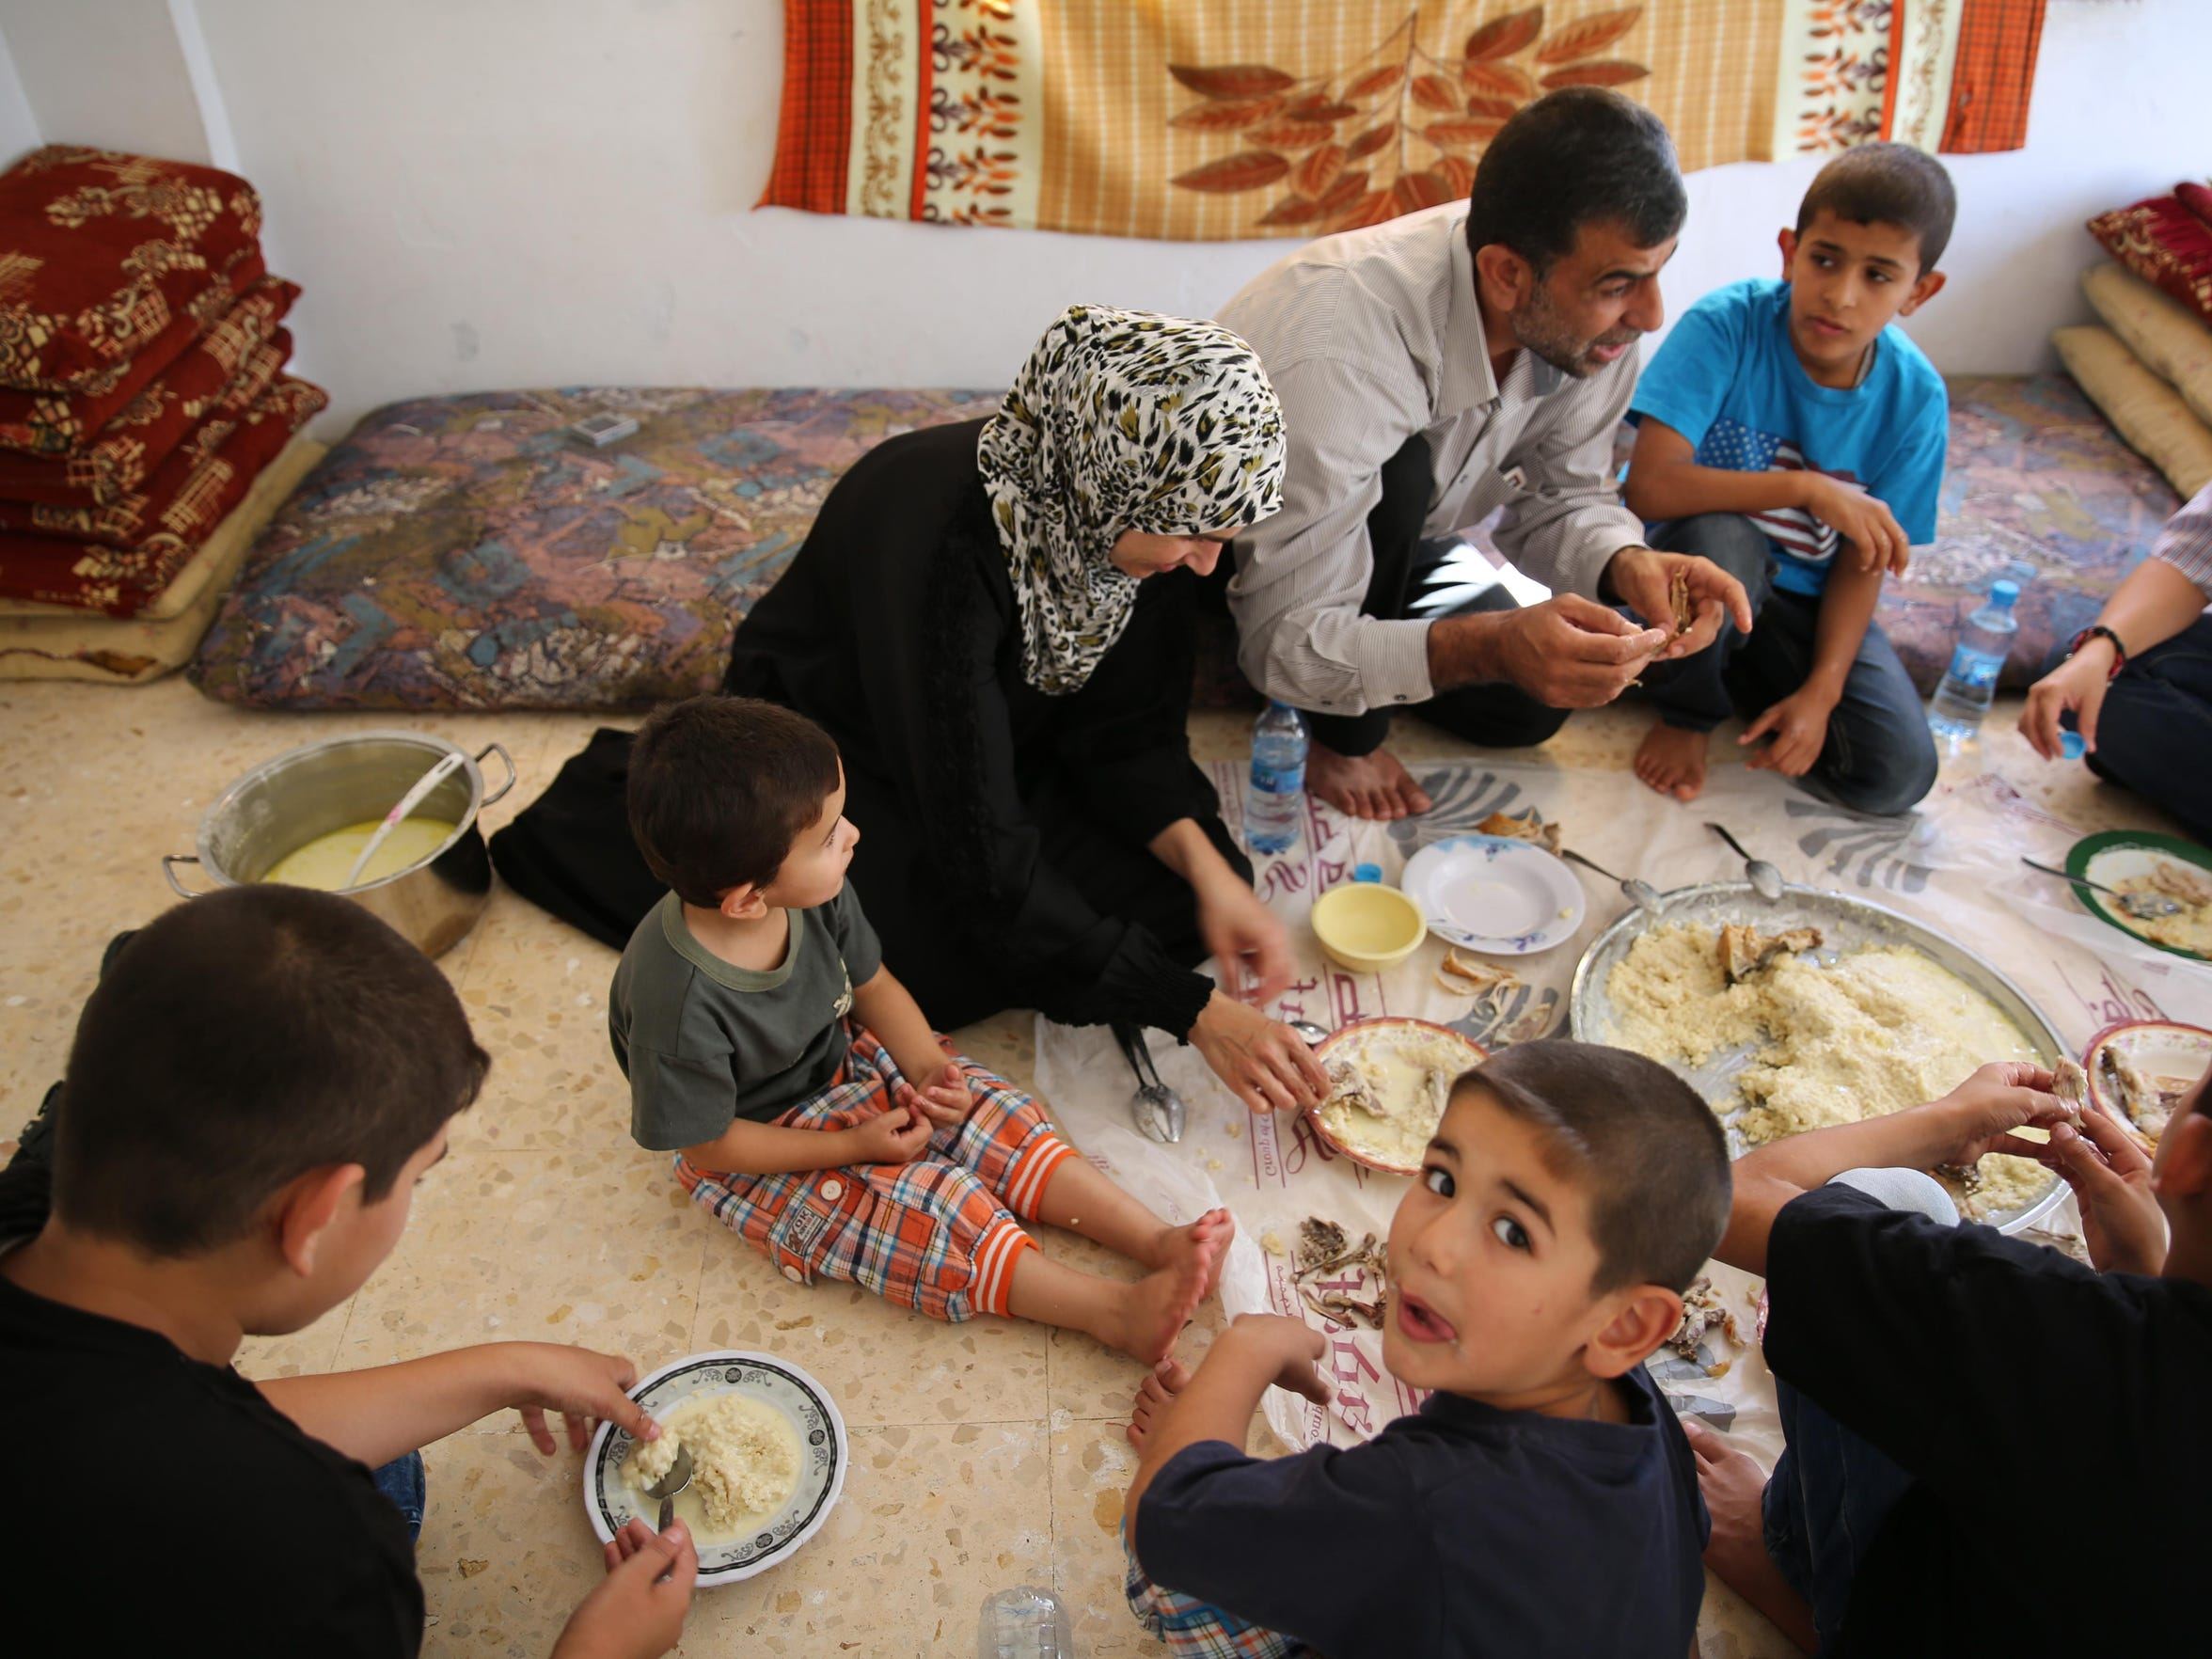 . In their sparse Taiyyba apartment, Ahmad Al Tybawi and his family share a celebratory meal, a treat after scraping by for years on dwindling humanitarian aid and illegal day labor jobs.